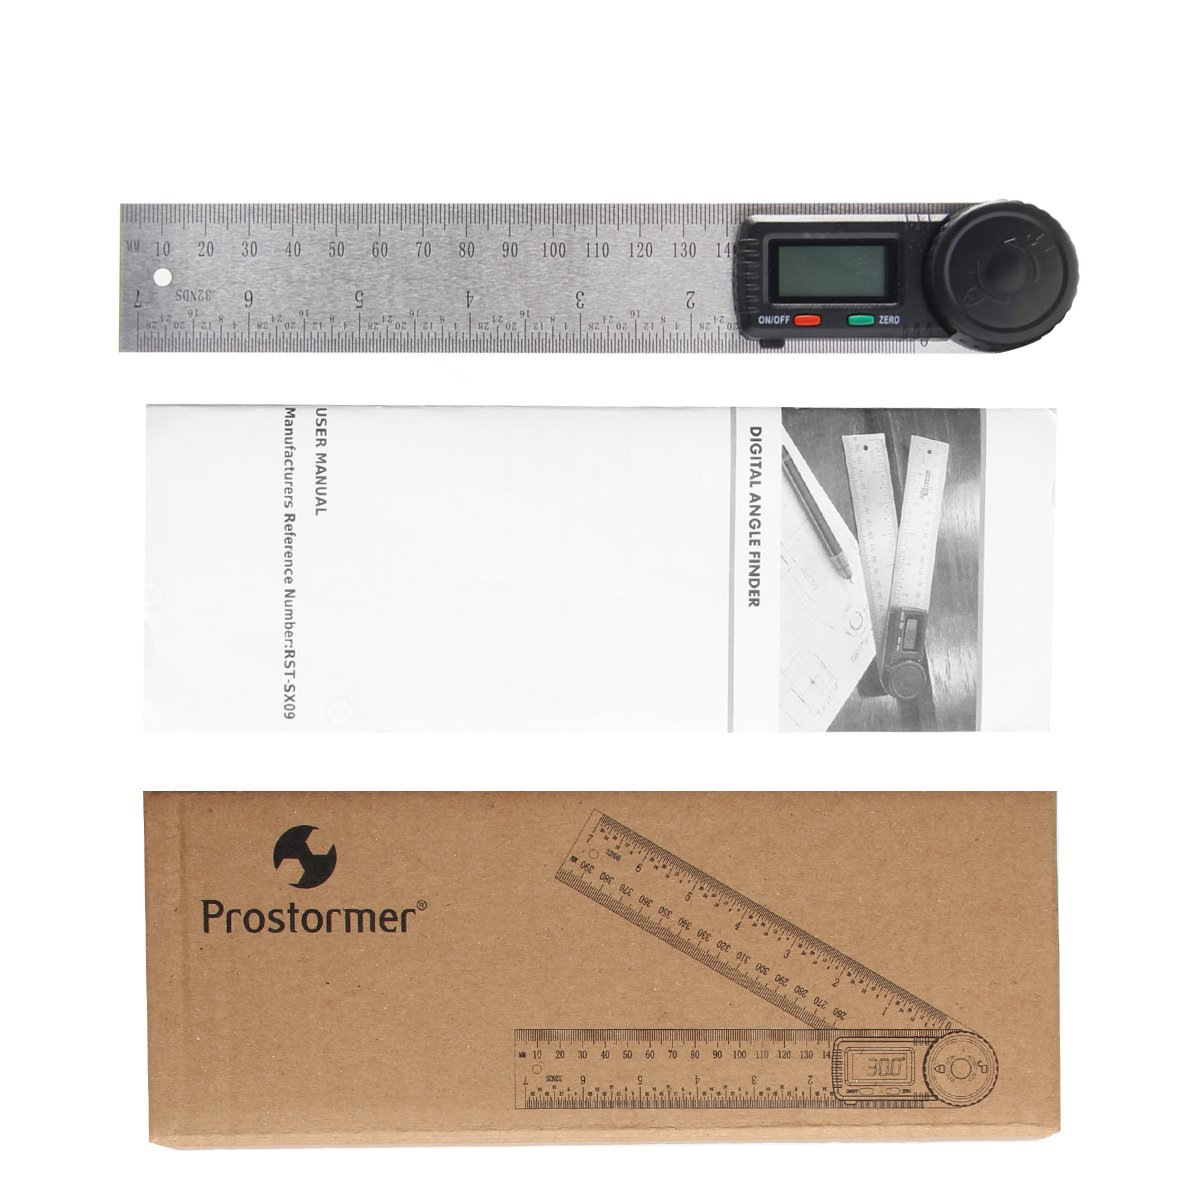 Prostormer Digital Angle Finder with Locking and Zeroing Function, 360 Degree Protractor 7 inch Stainless Steel Ruler for Woodworking, Construction and Drawing by Prostormer (Image #7)